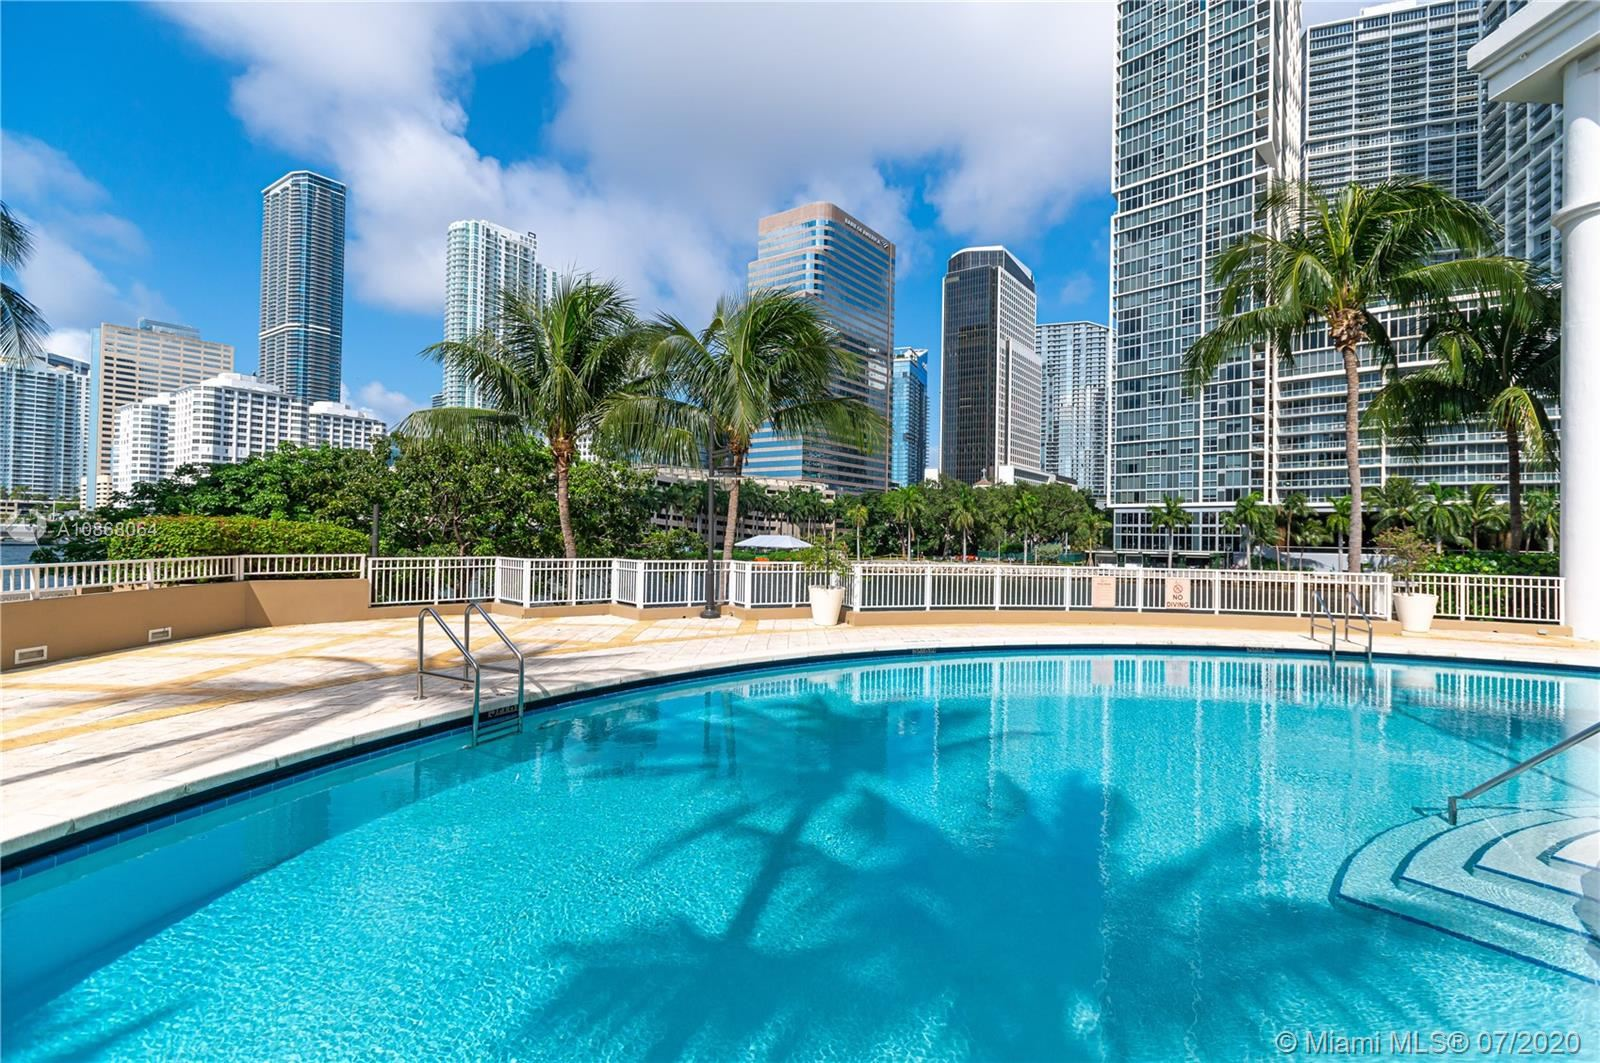 801 Brickell Key Blvd #1905, Miami, FL 33131 - #: A10868064